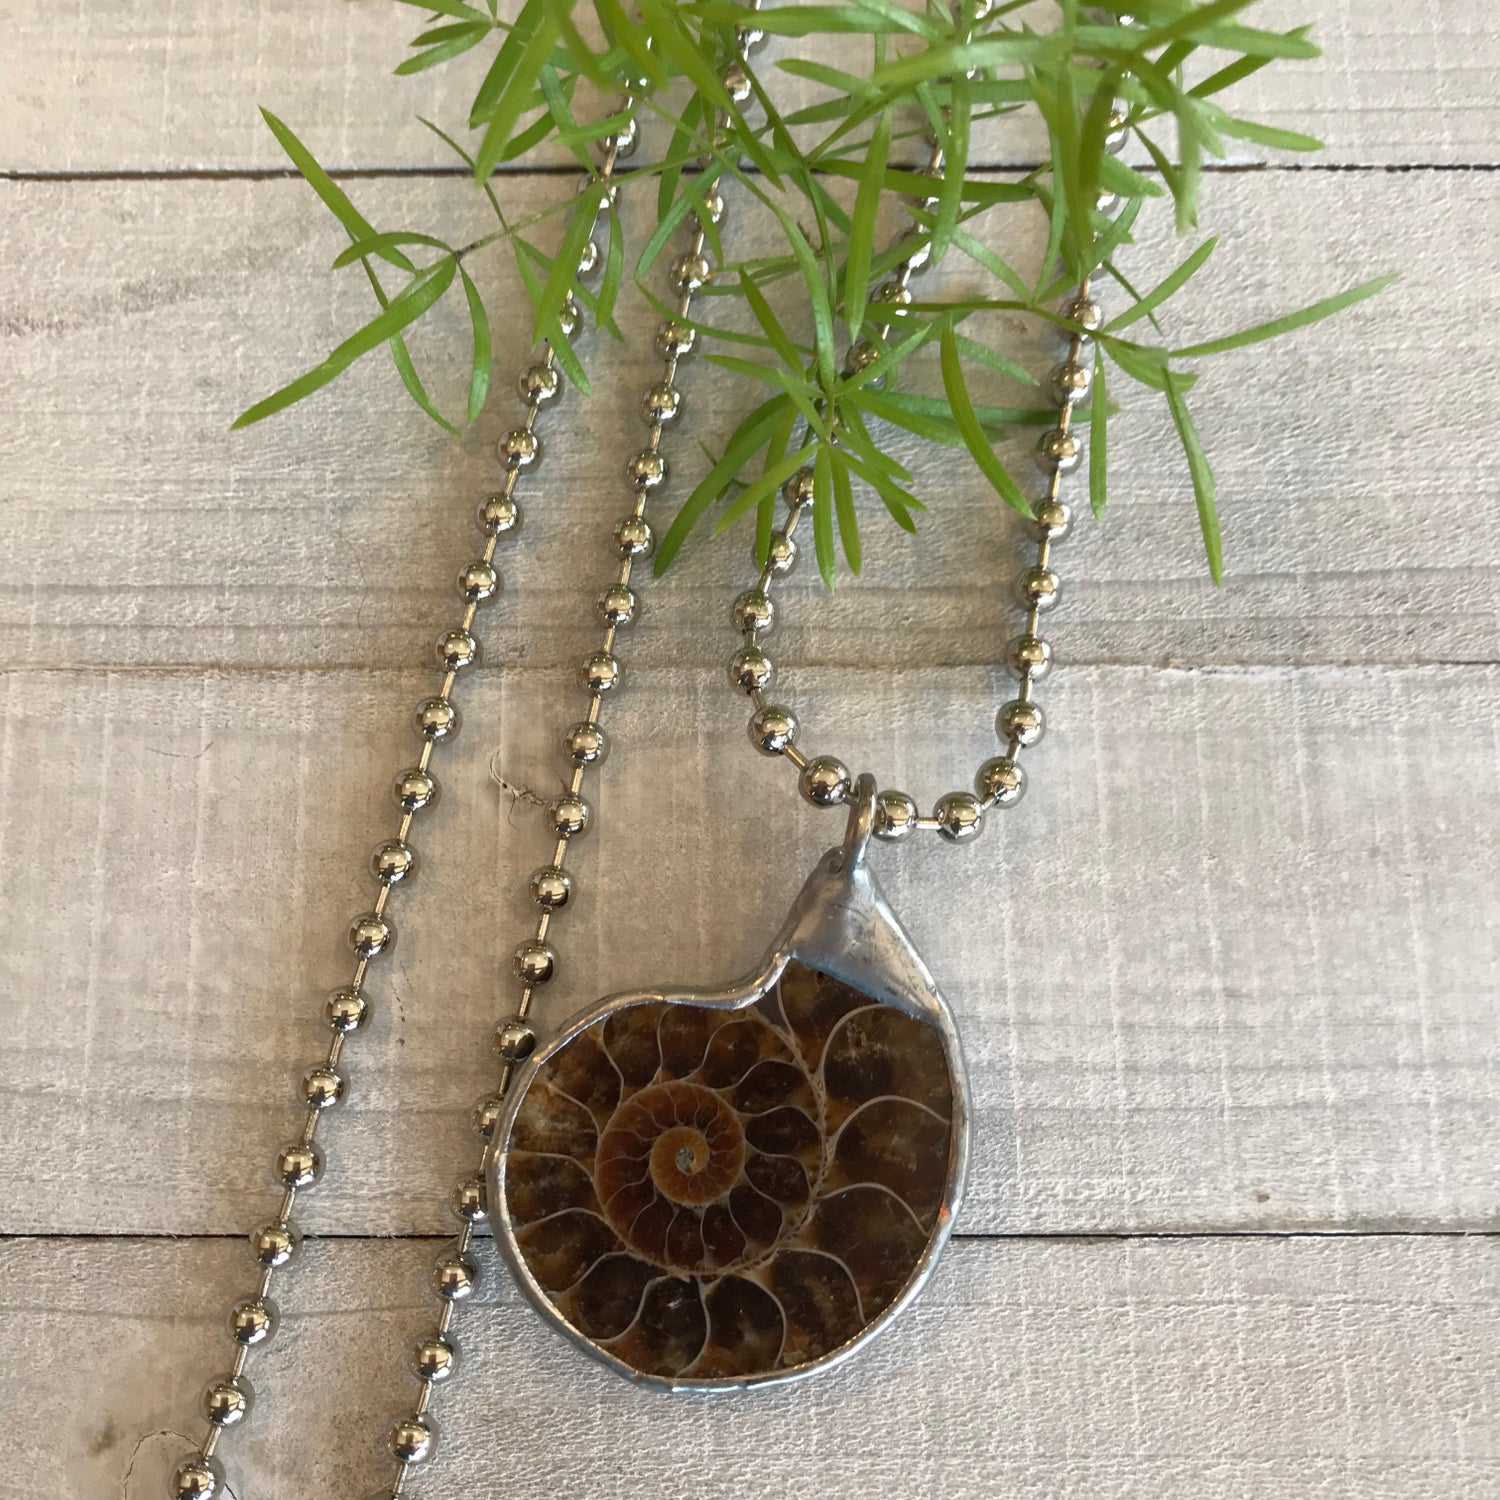 Image of Organic Necklaces